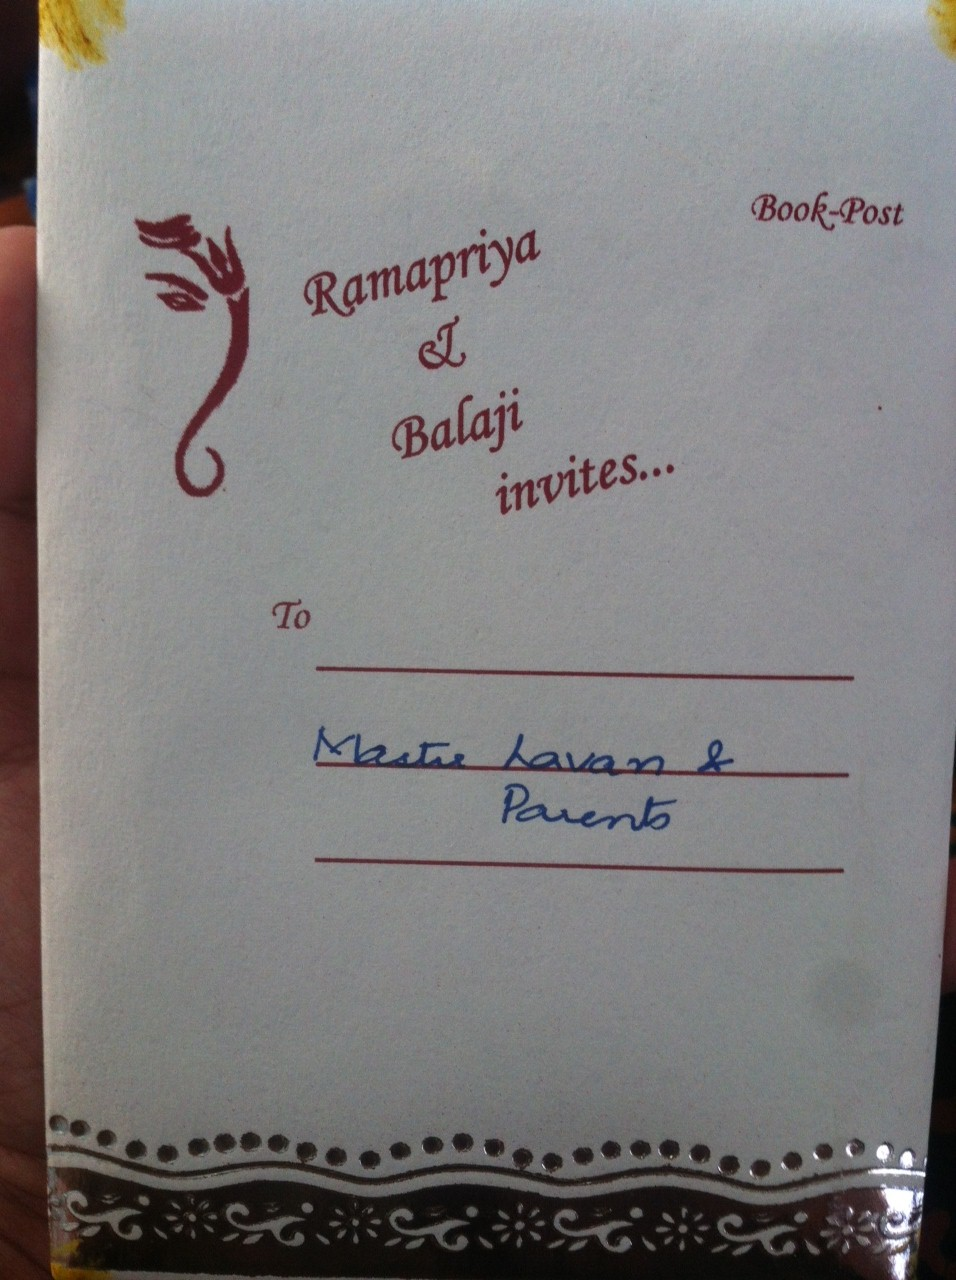 Ram's marriage invite